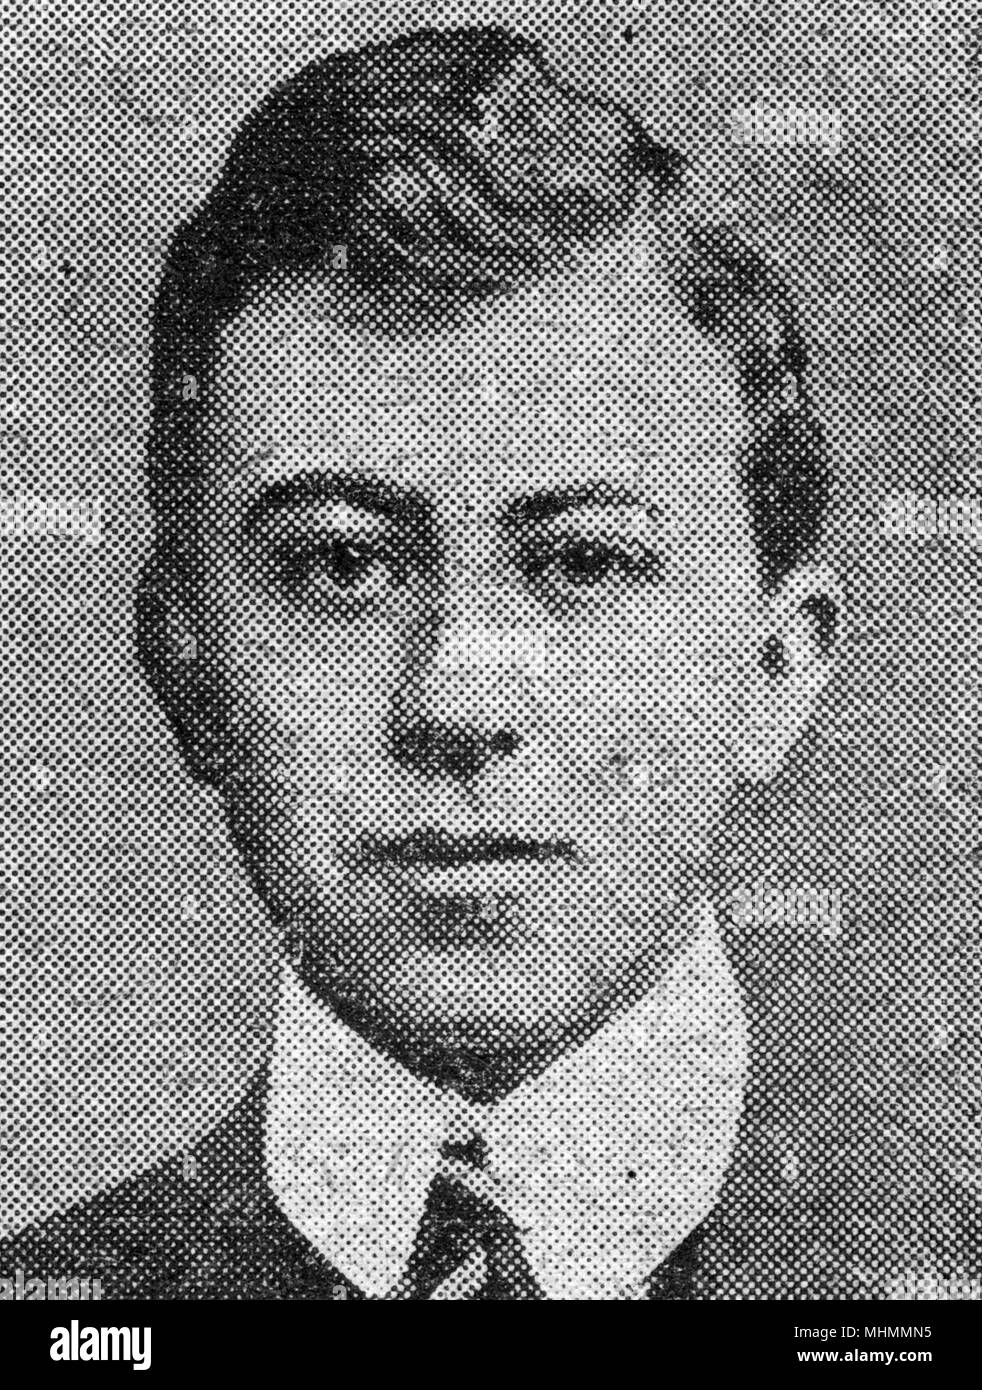 Lt George Schack-Sommer, Londoner and old Etonian, awarded the St George's Cross for valour, the Russian equivalent of the Victoria Cross, for gallant conduct while fighting with the Artisky Hussars in the Dukla Pass, Carpathians, during an engagement in spring 1915, in the First World War.     Date: 1915 - Stock Image